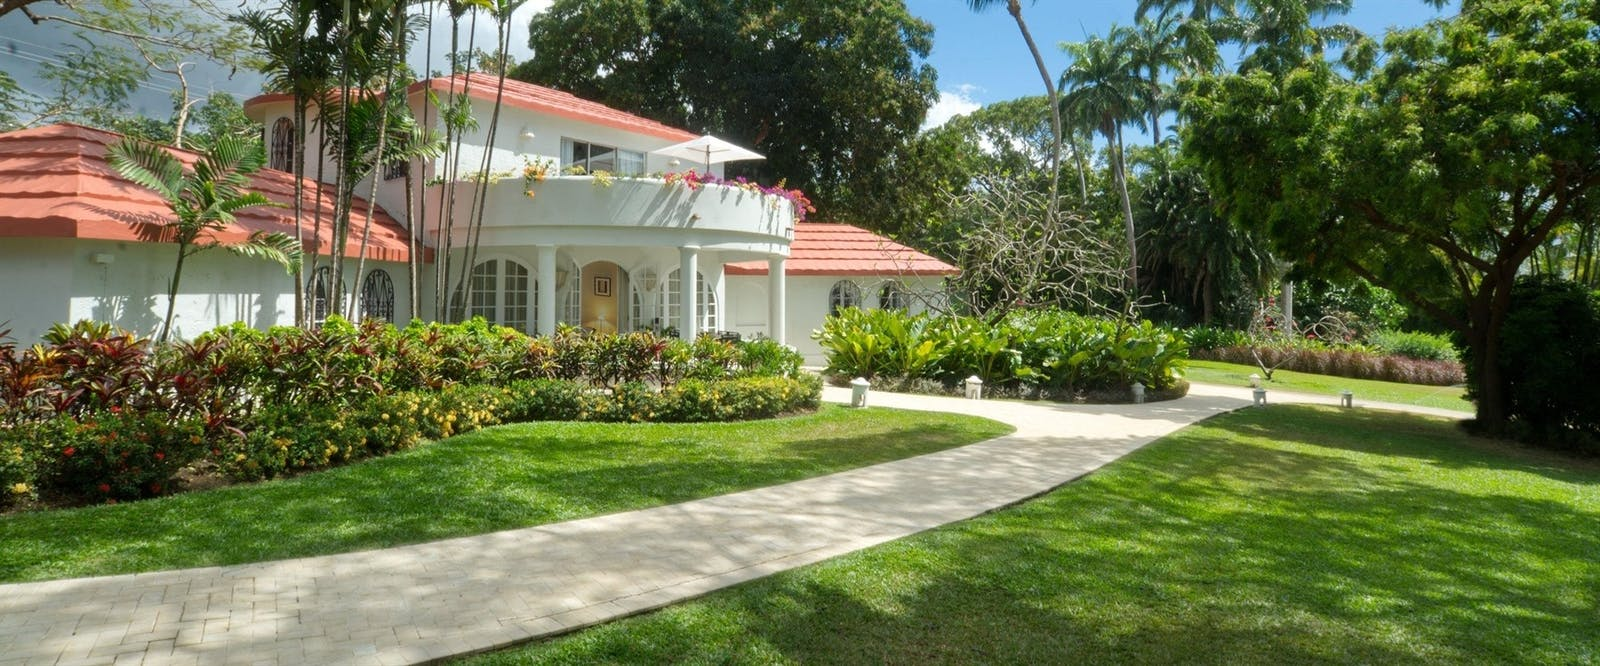 Three Bedroom Villa at Fairmont Royal Pavilion, Barbados